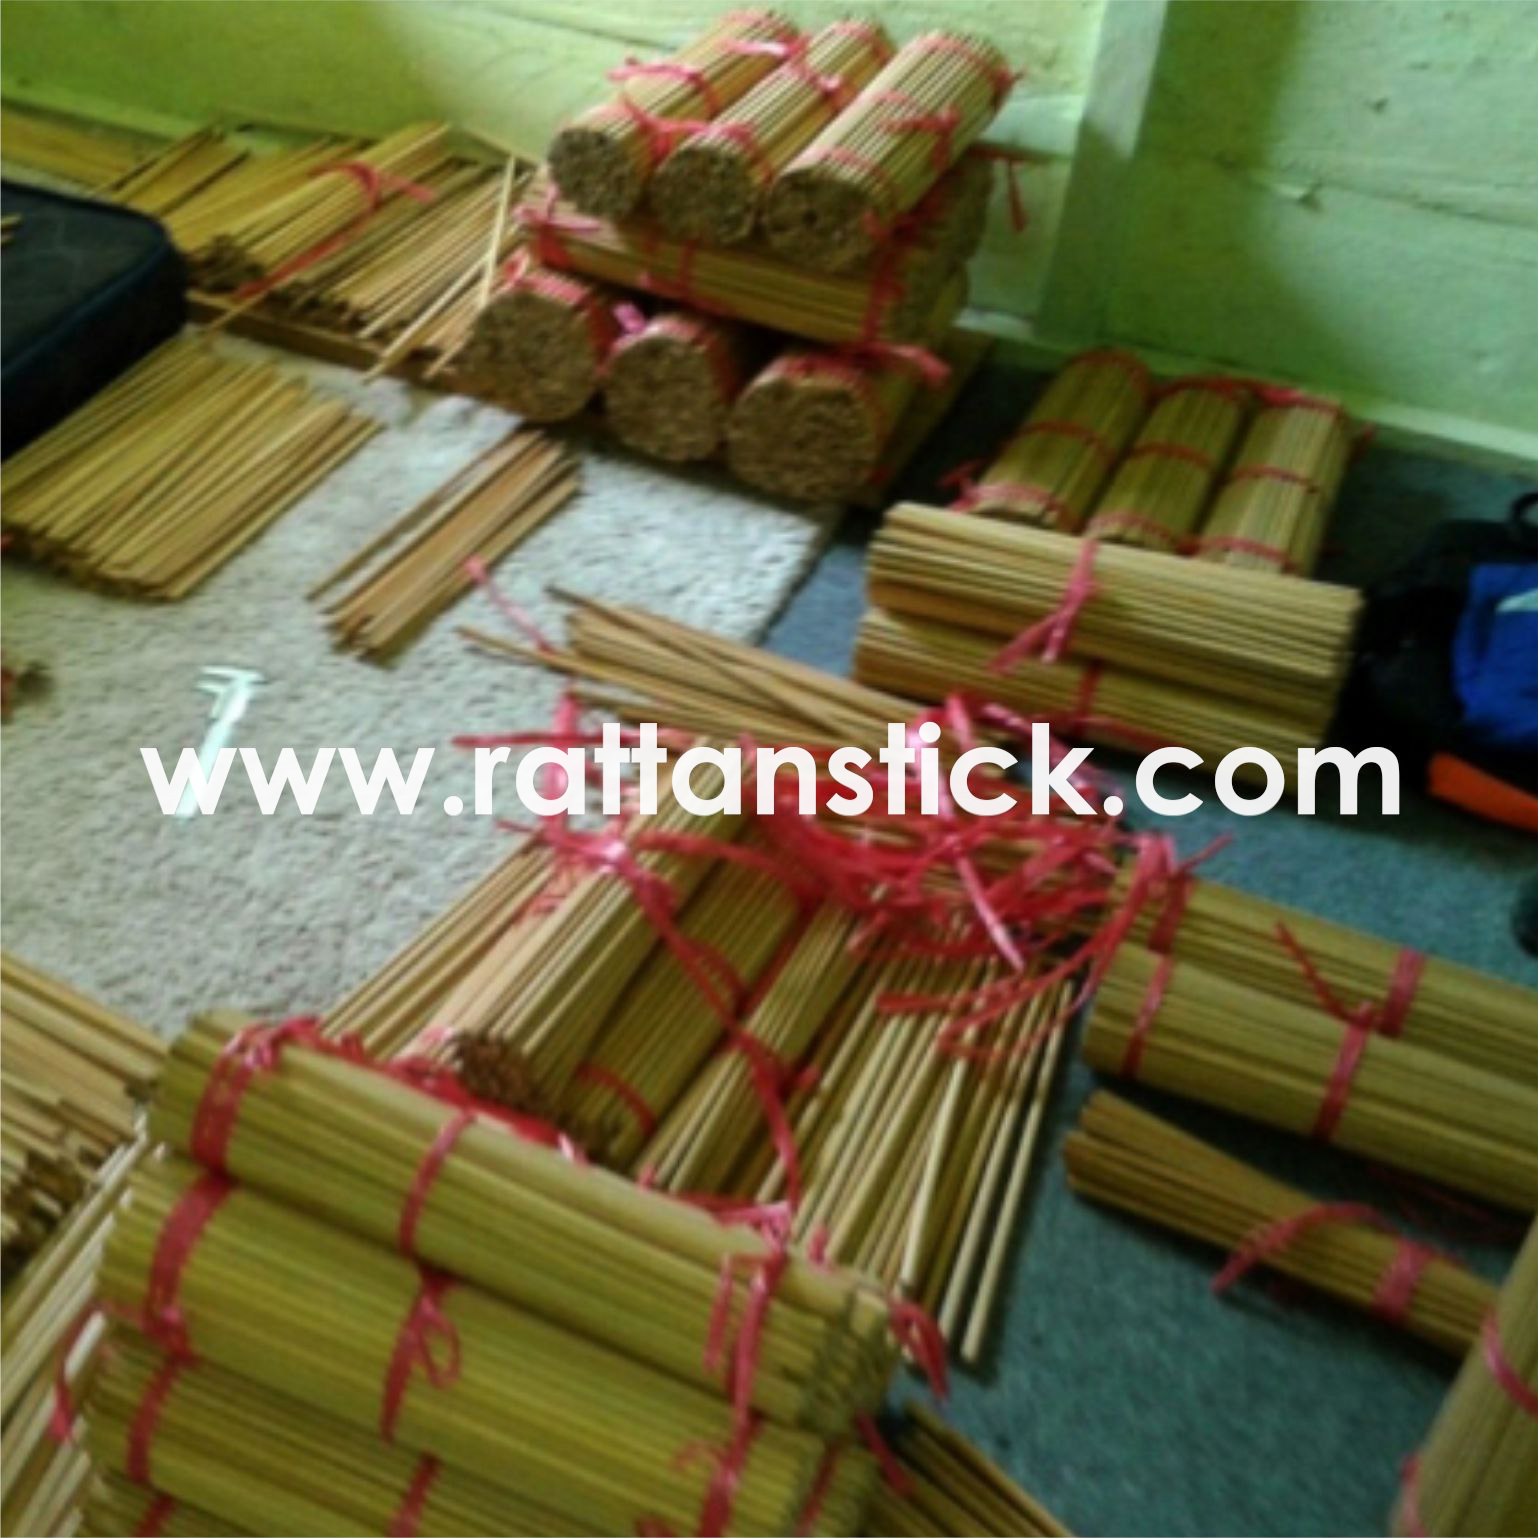 Rattan Sticks for Martial Arts